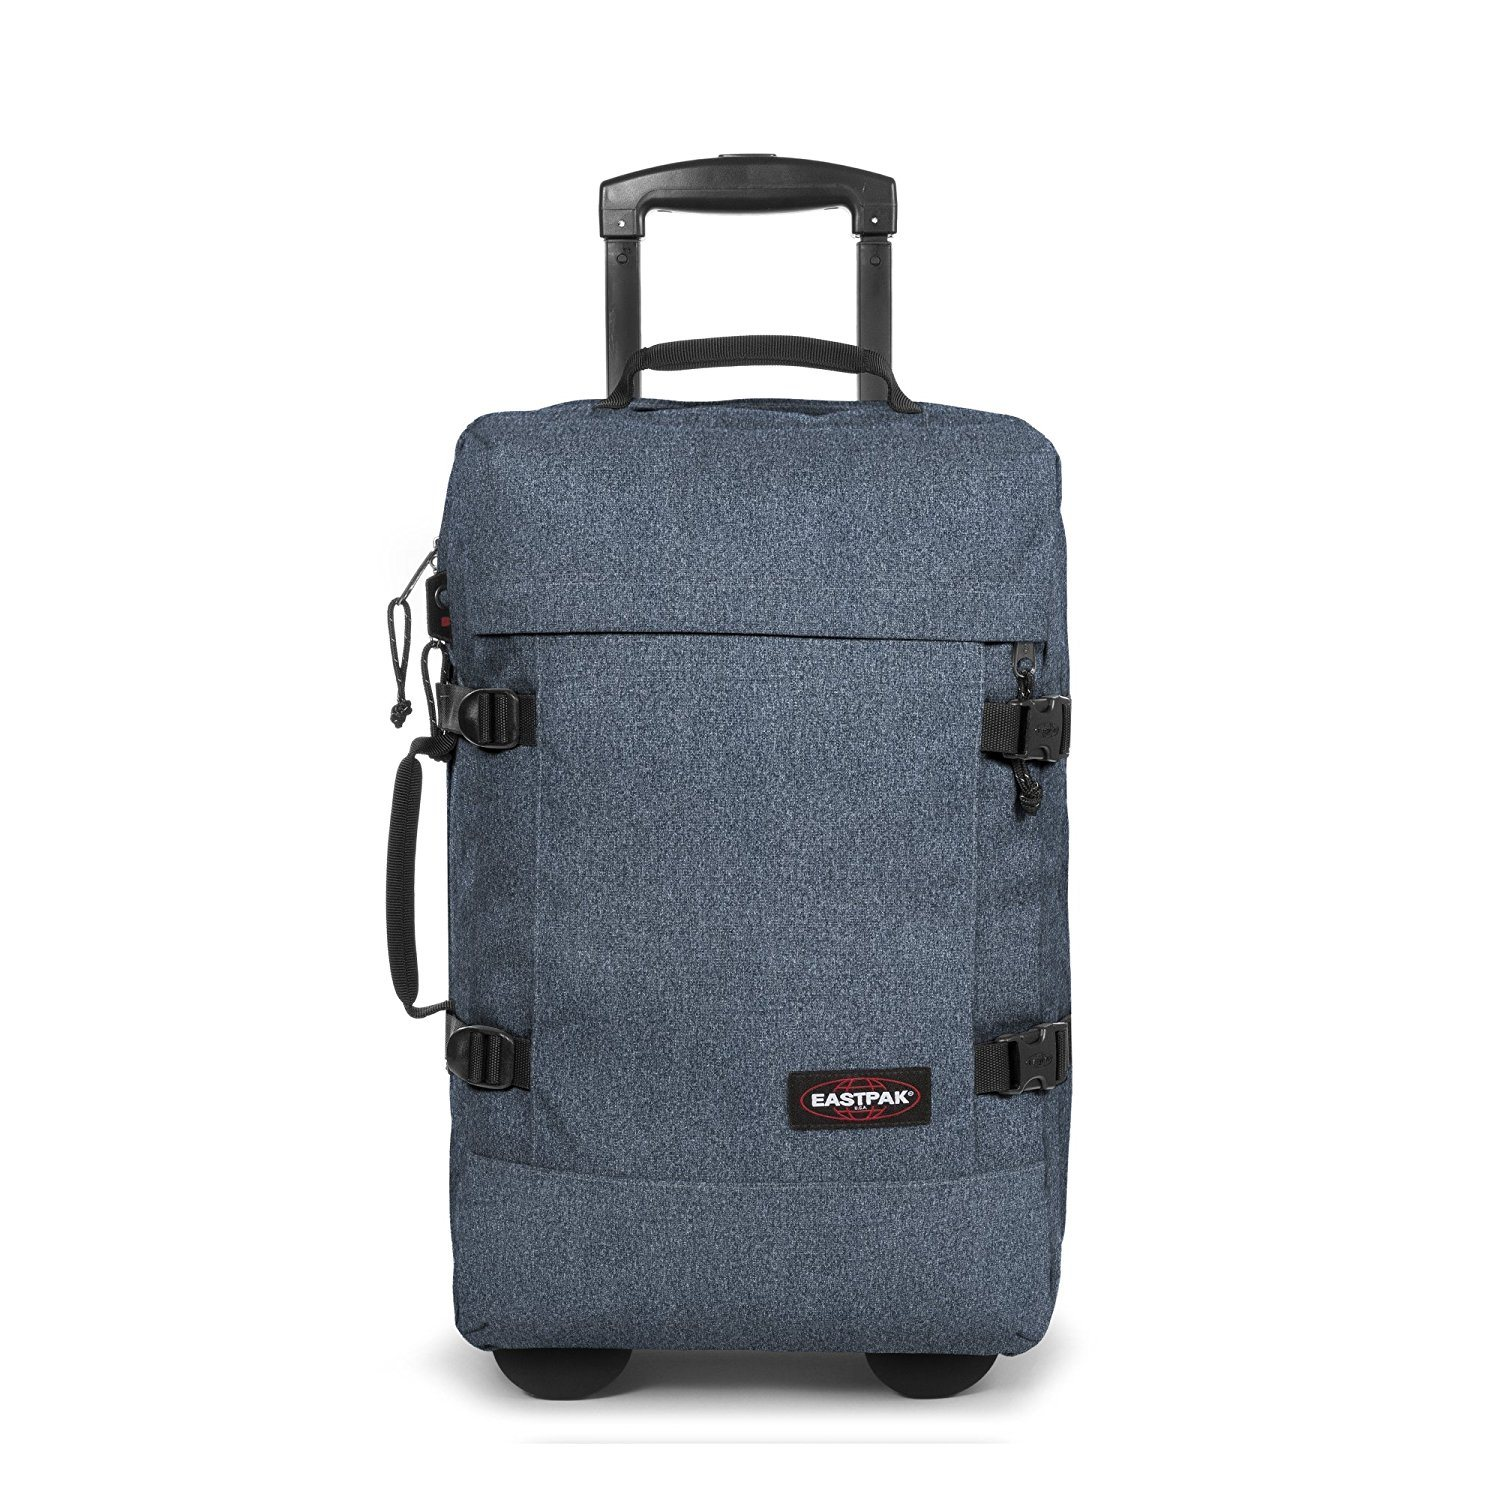 Best soft sided suitcase